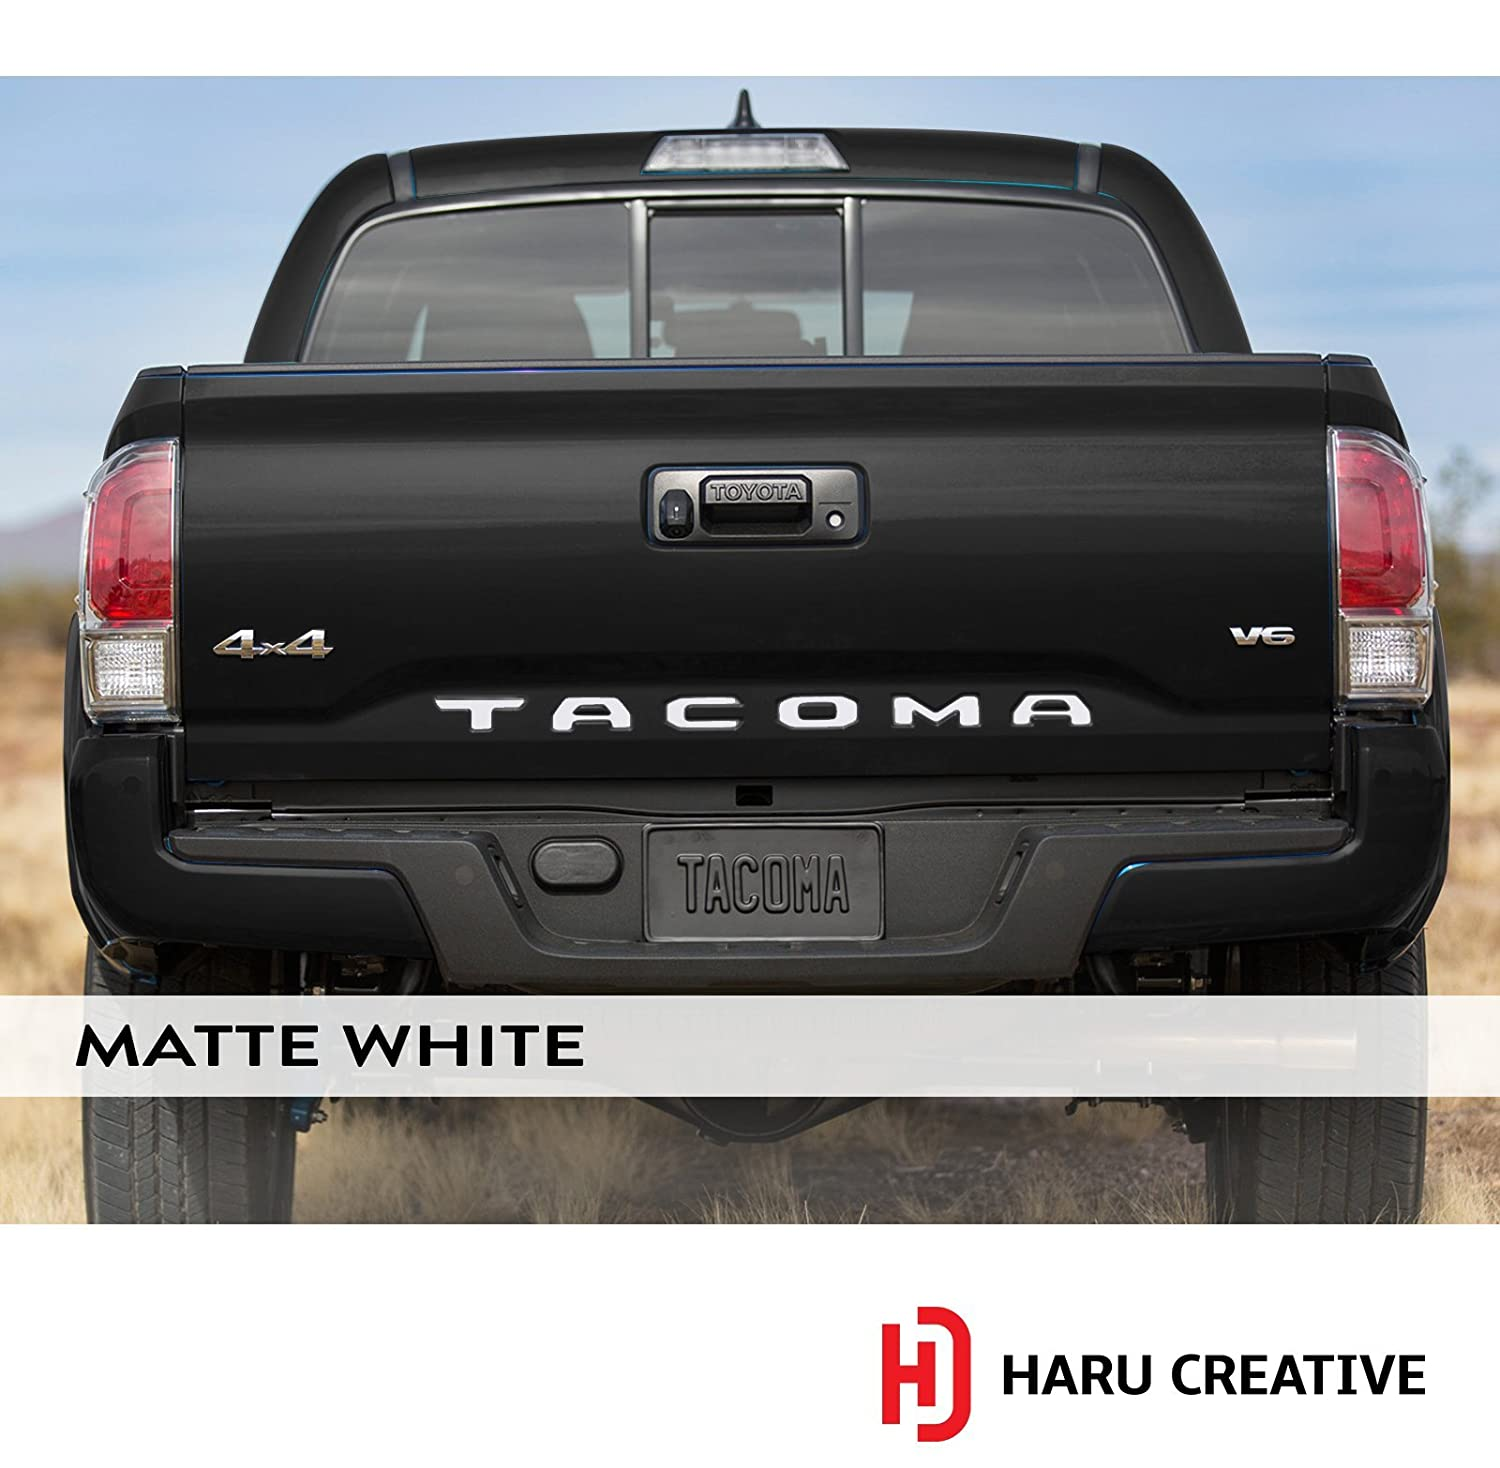 Haru Creative Glove Box Dashboard Letter Insert Decal Sticker Compatible with and Fits Toyota Tacoma 2016 2017 2018 Matte Blue